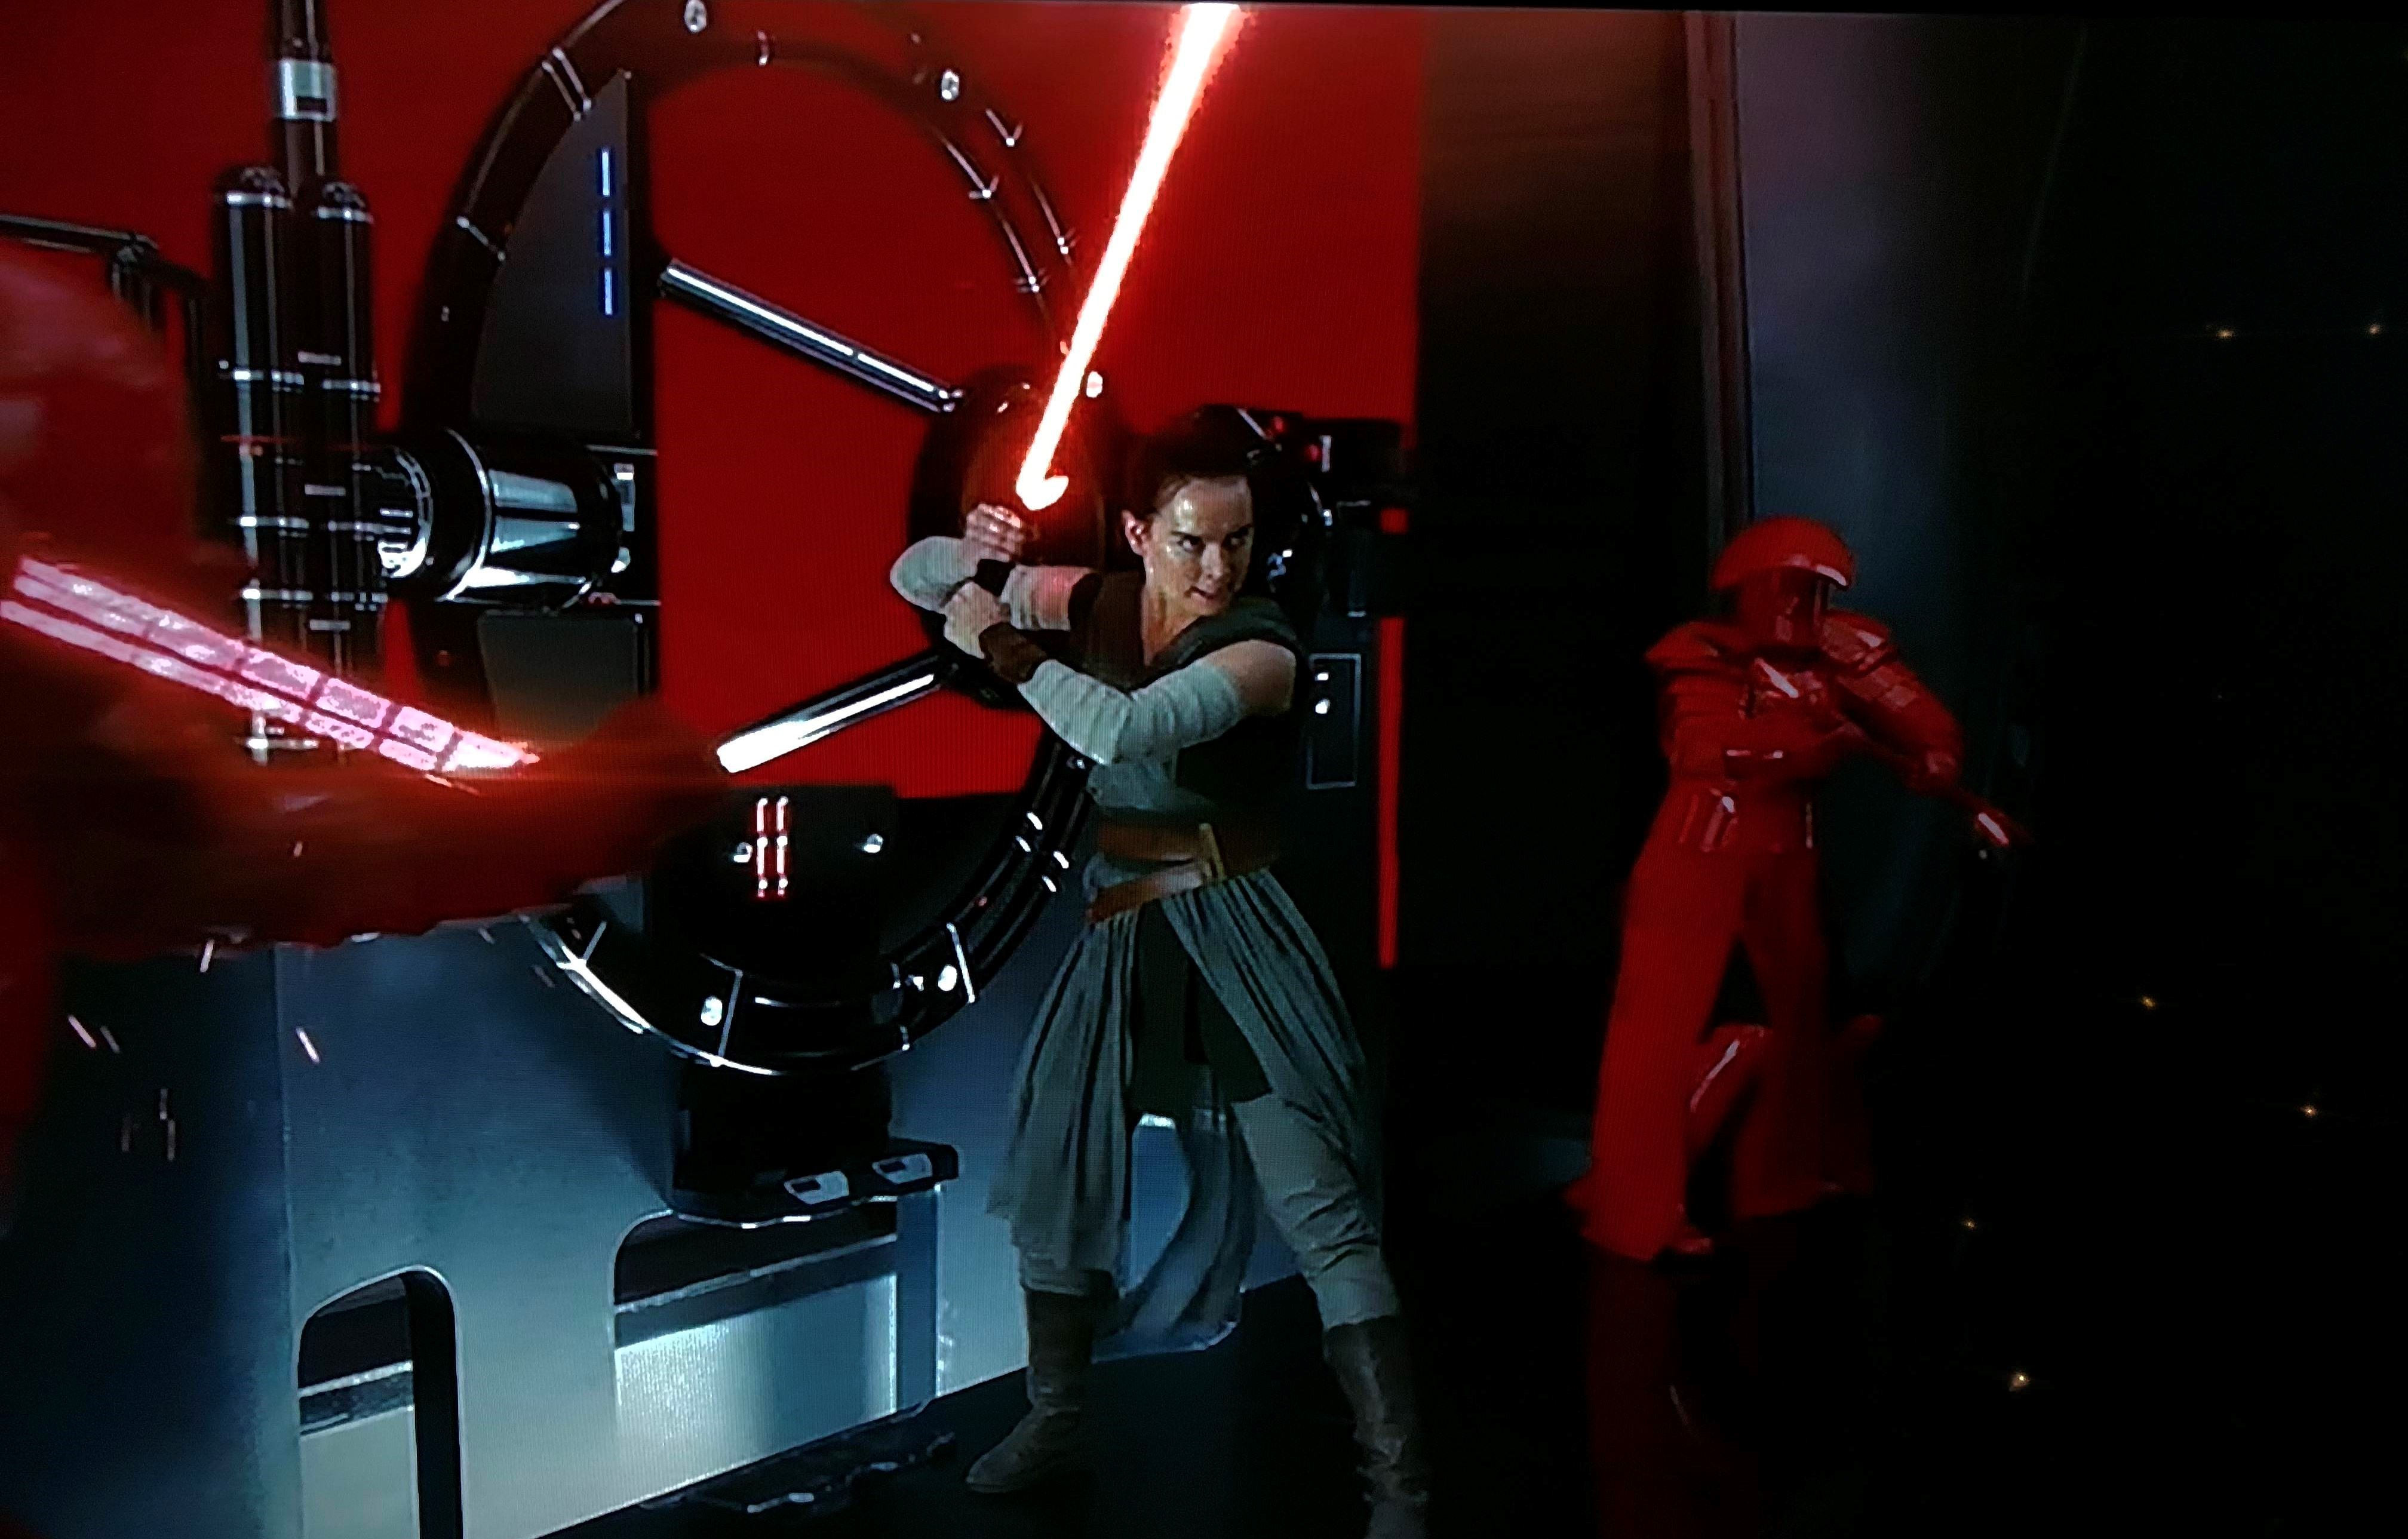 Something You Should Know about The Last Jedi – Scavenger's Holocron